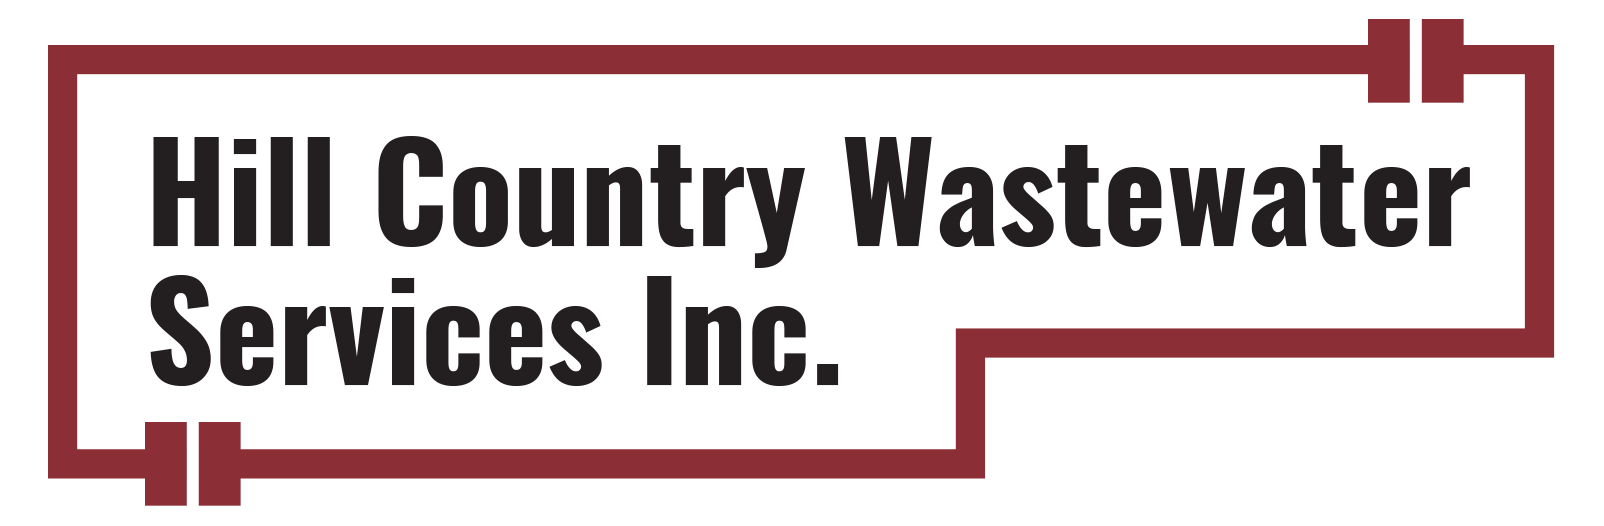 Hill Country Wastewater Services Inc.